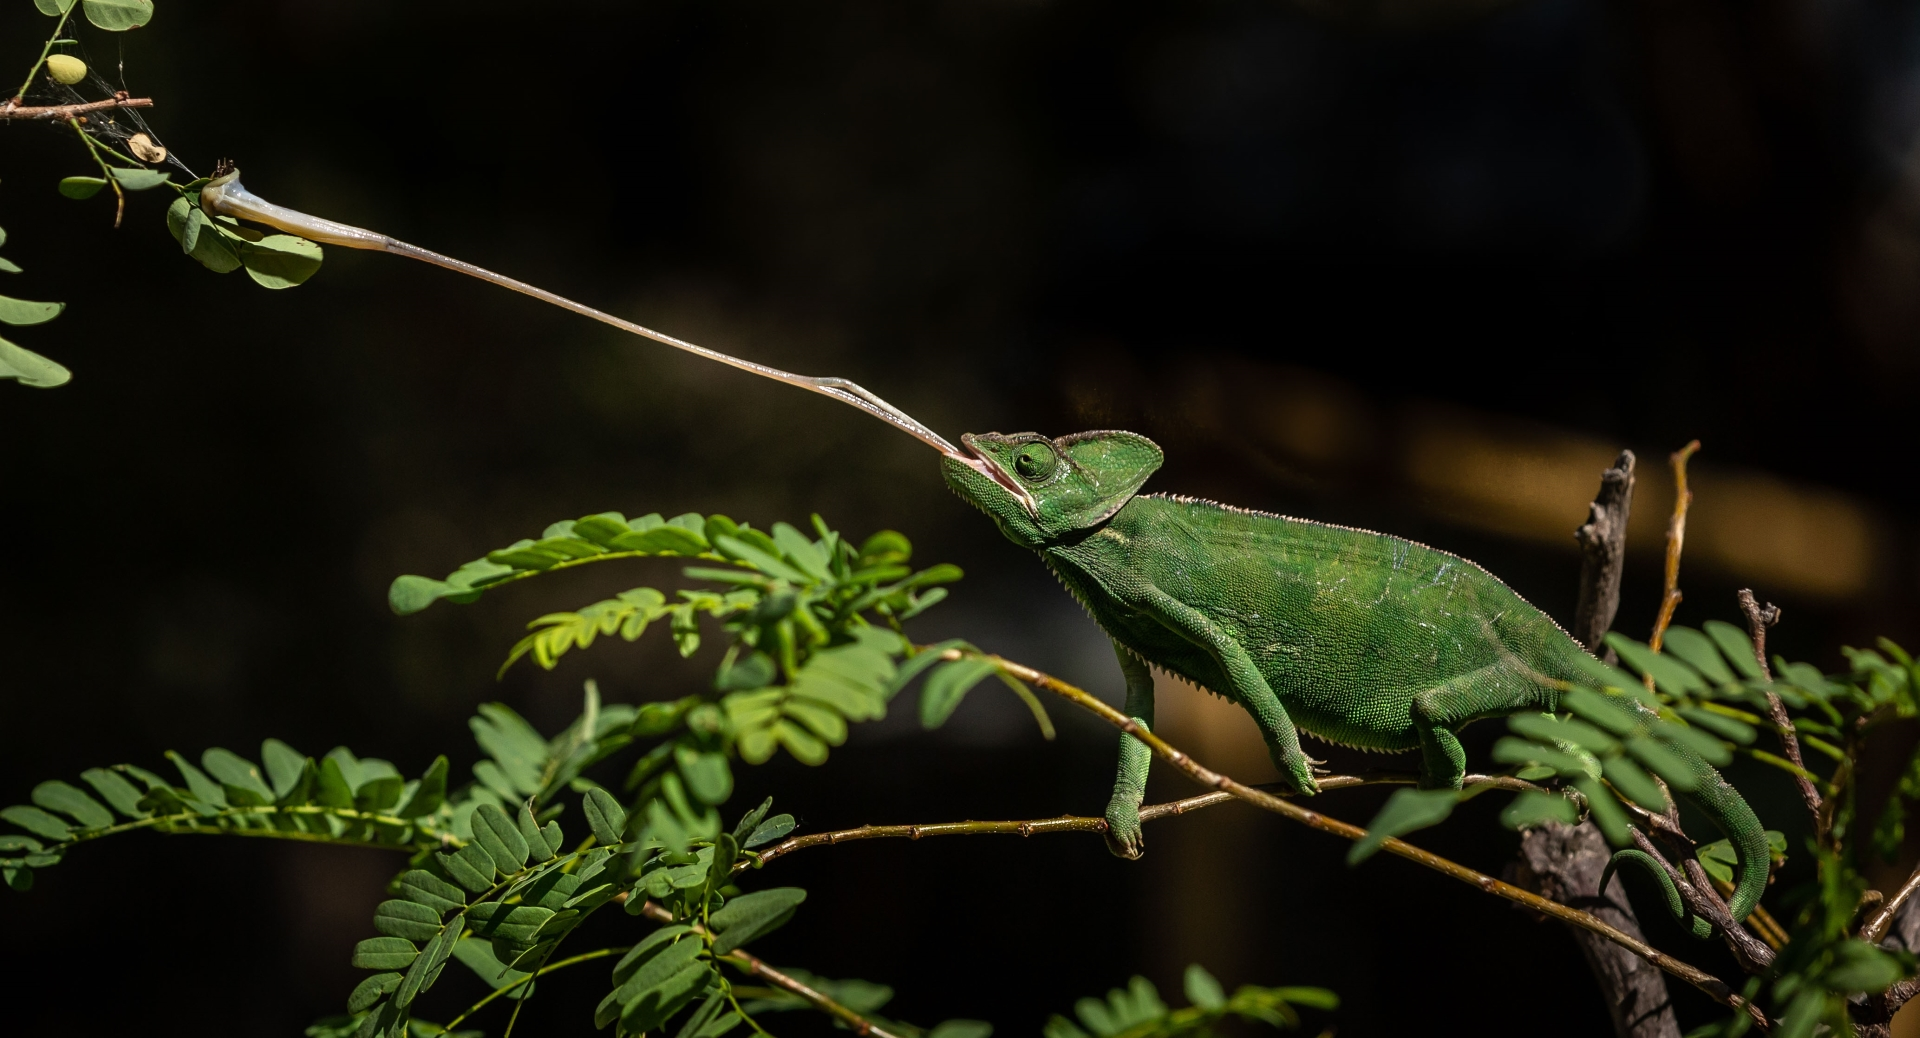 'Yemen Chameleon catching a bug. The tongue is 1.5 to 2 times the length of their body' (NA 1 Place) by Sharon Thorp - SC